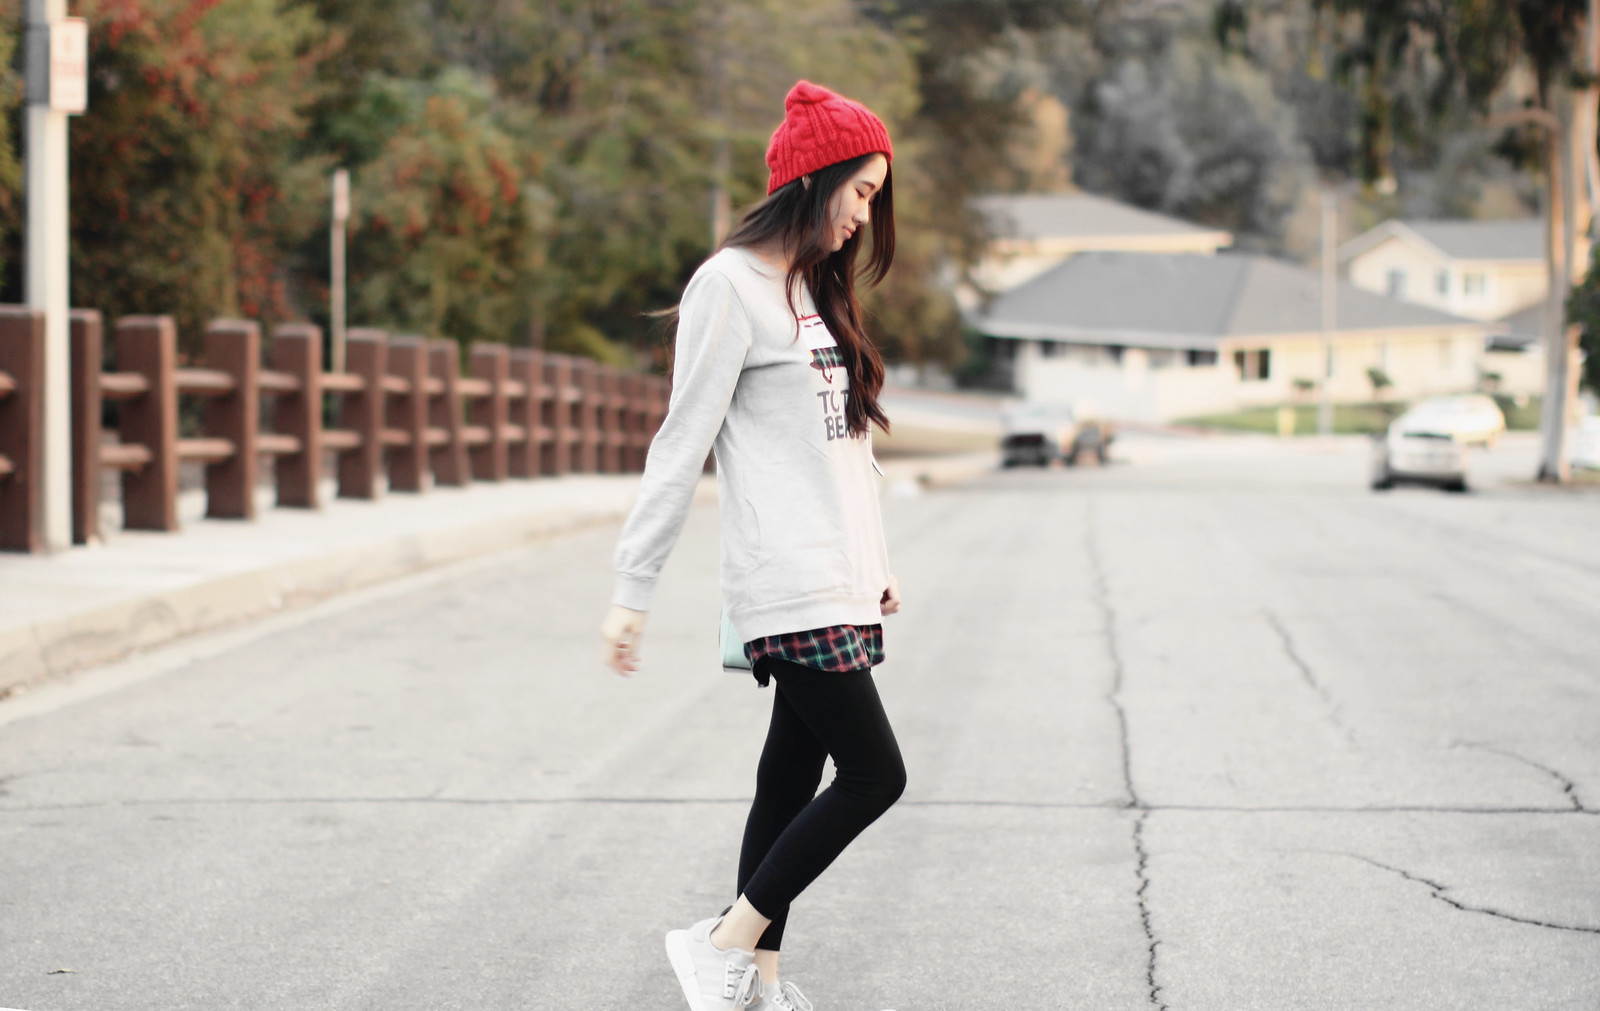 1259-ootd-sweaterdress-koreanfashion-asianfashion-korean-fall-yesstyle-sweaterweather-clothestoyouuu-blogger-elizabeeetht